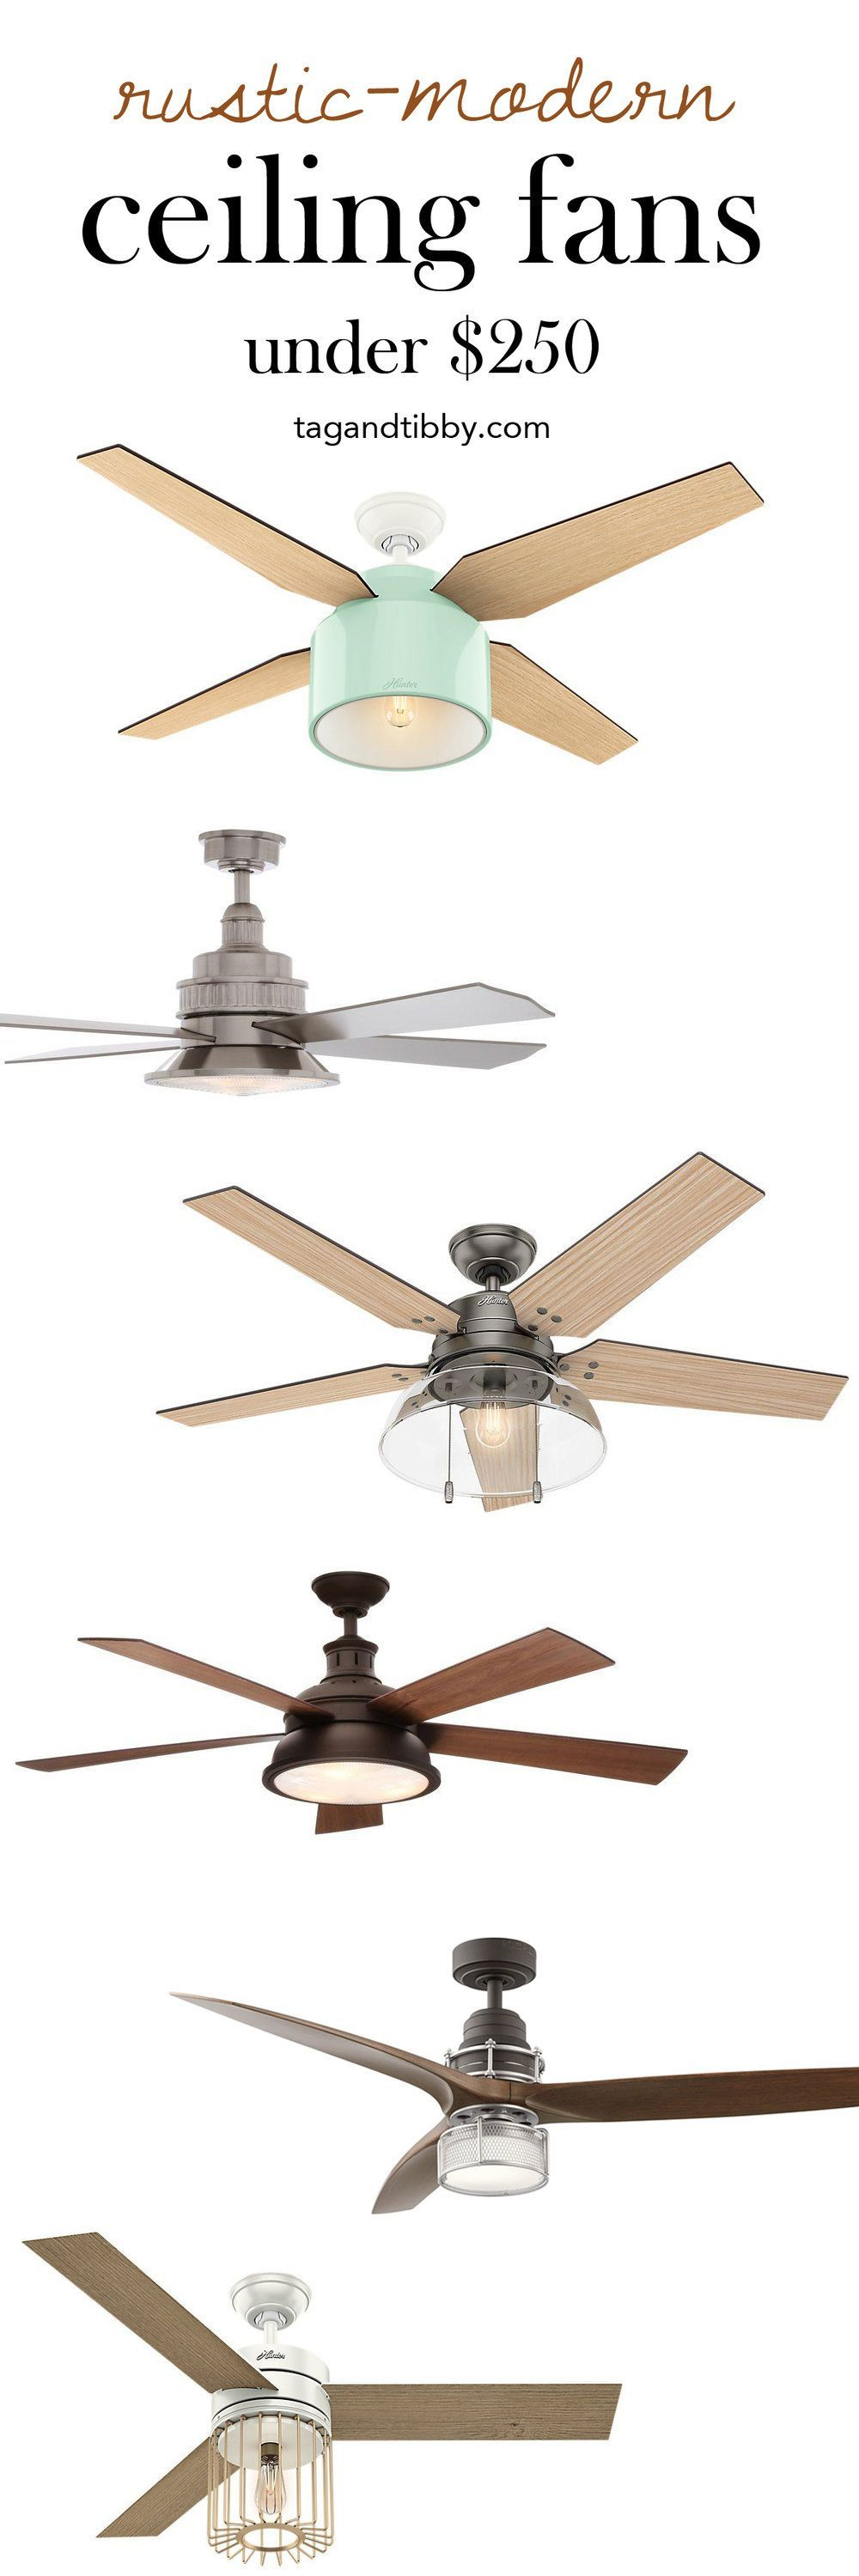 the best rustic modern ceiling fans for under $250